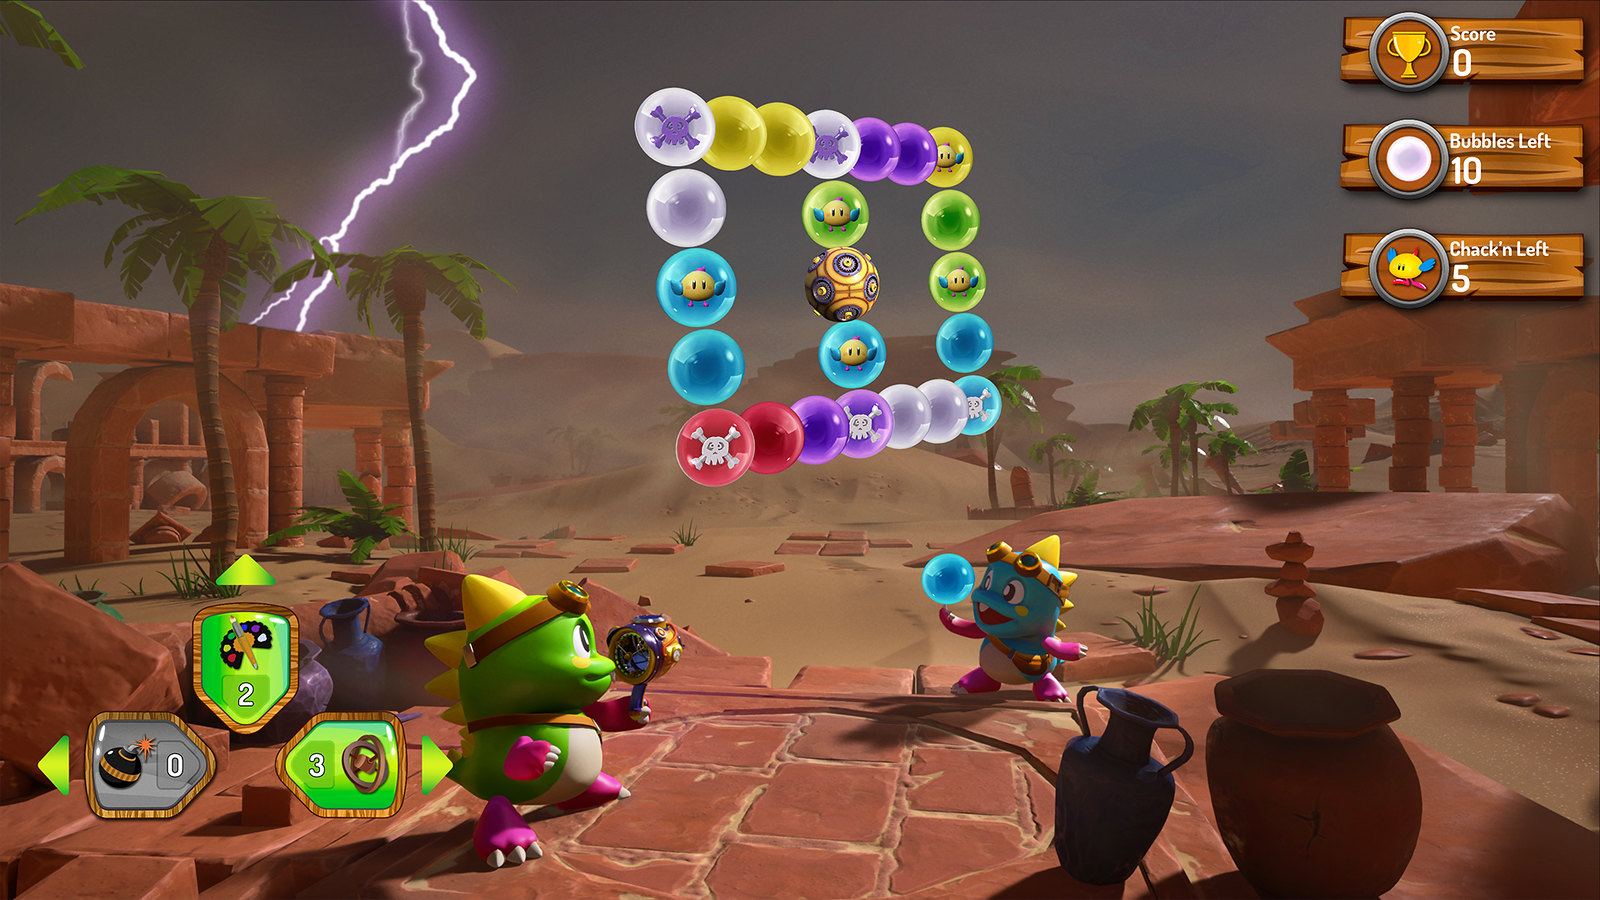 Playstation News: 10 Tips to master Puzzle Bobble 3D: Vacation Odyssey, out tomorrow